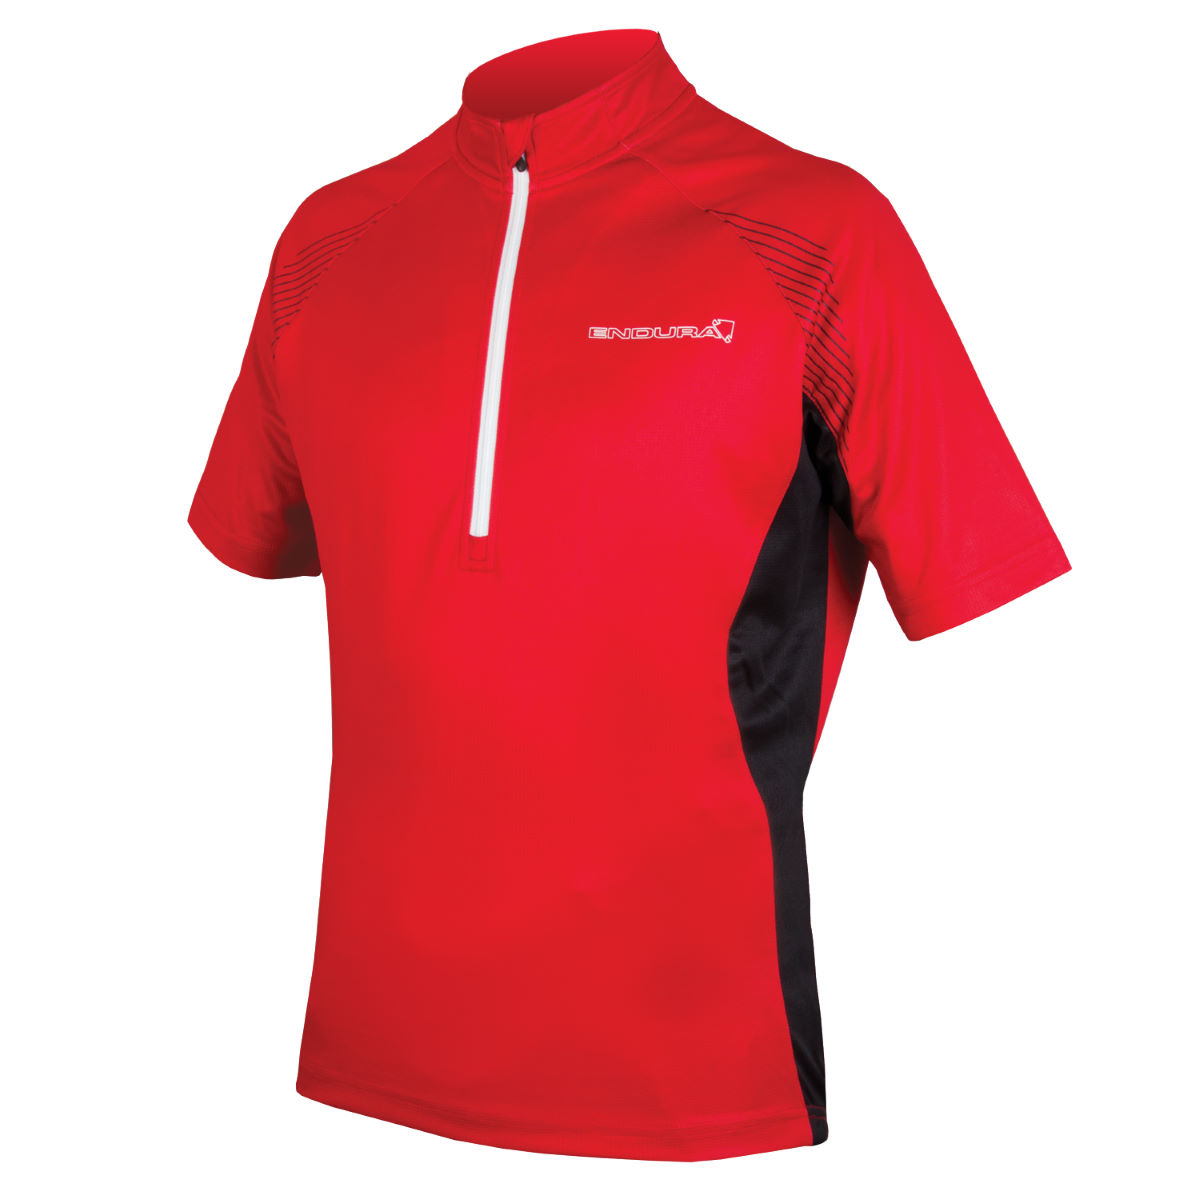 Maillot Endura Xtract II - S Rouge Maillots vélo à manches courtes